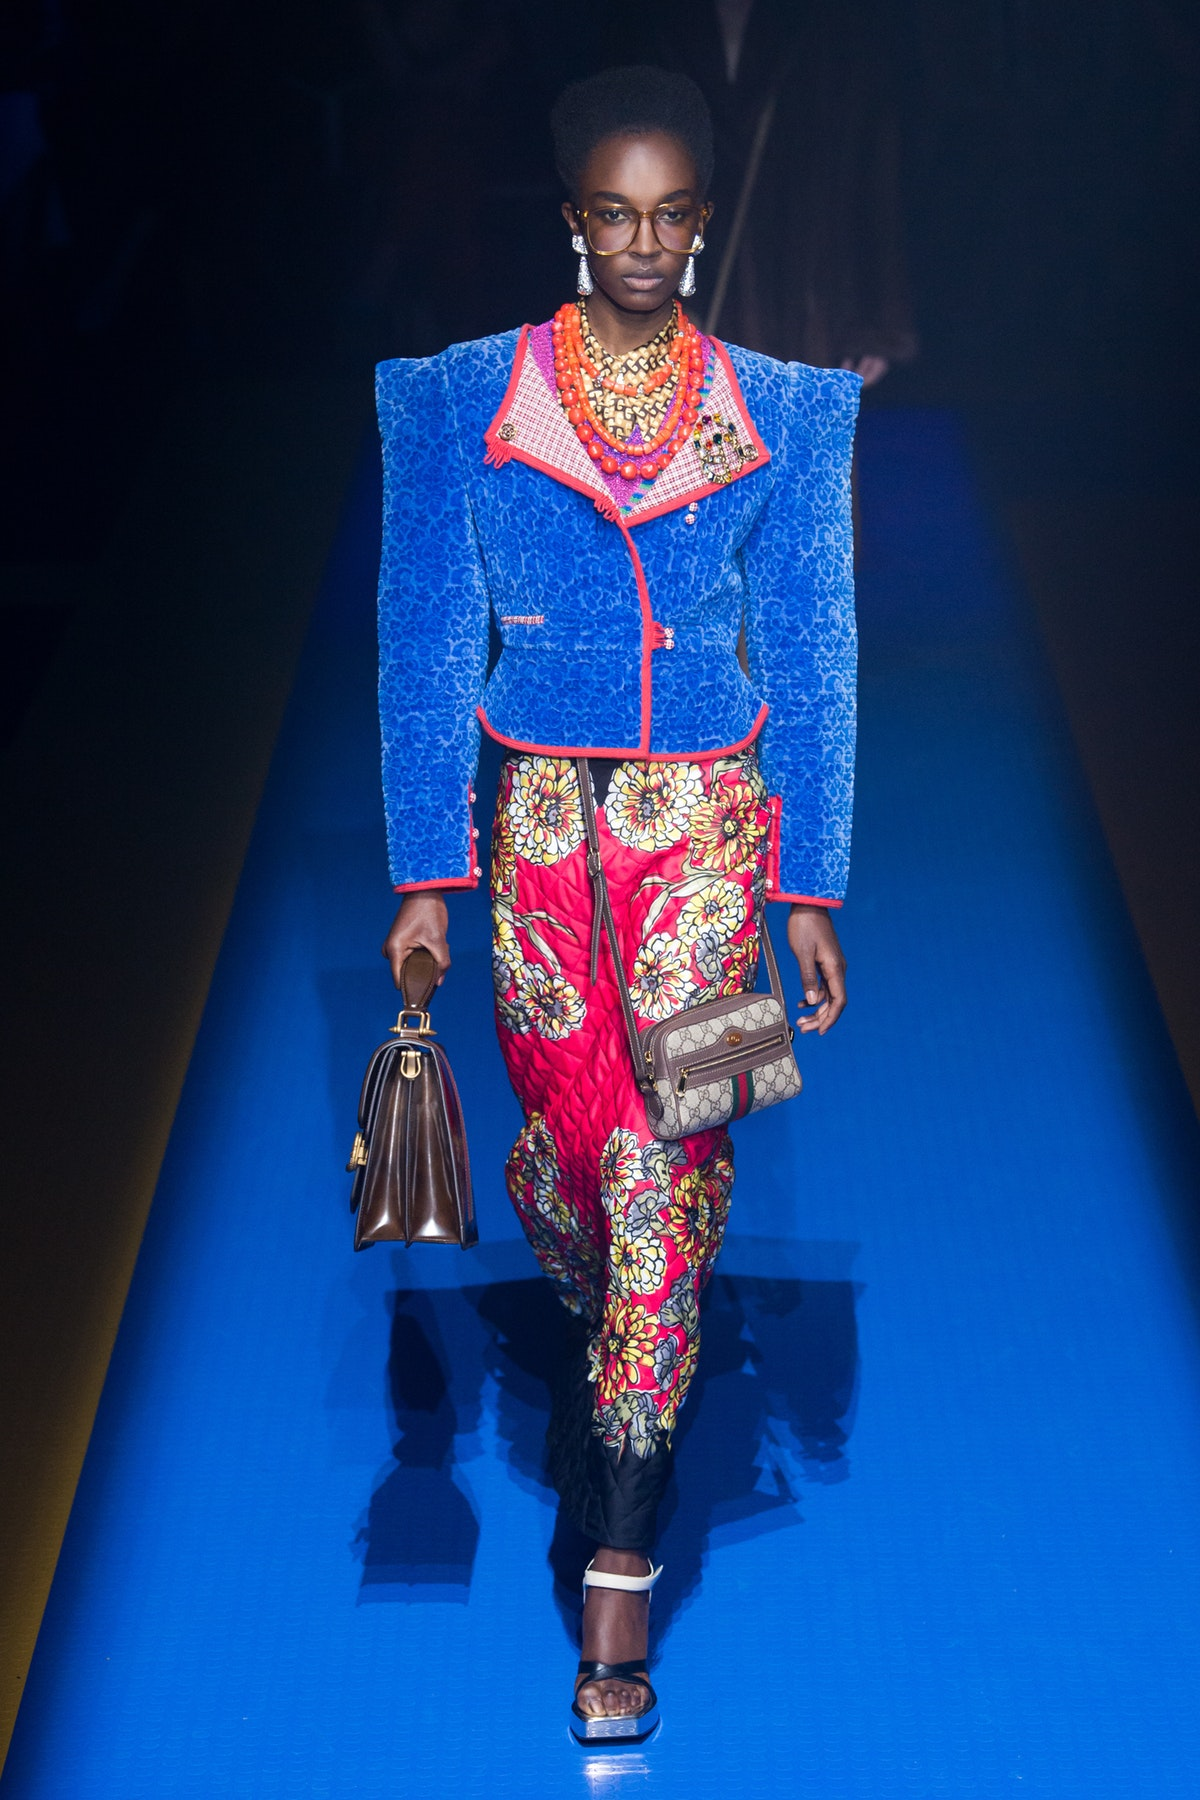 gucci_look_16_ready_to_wear_spring_2018.jpeg